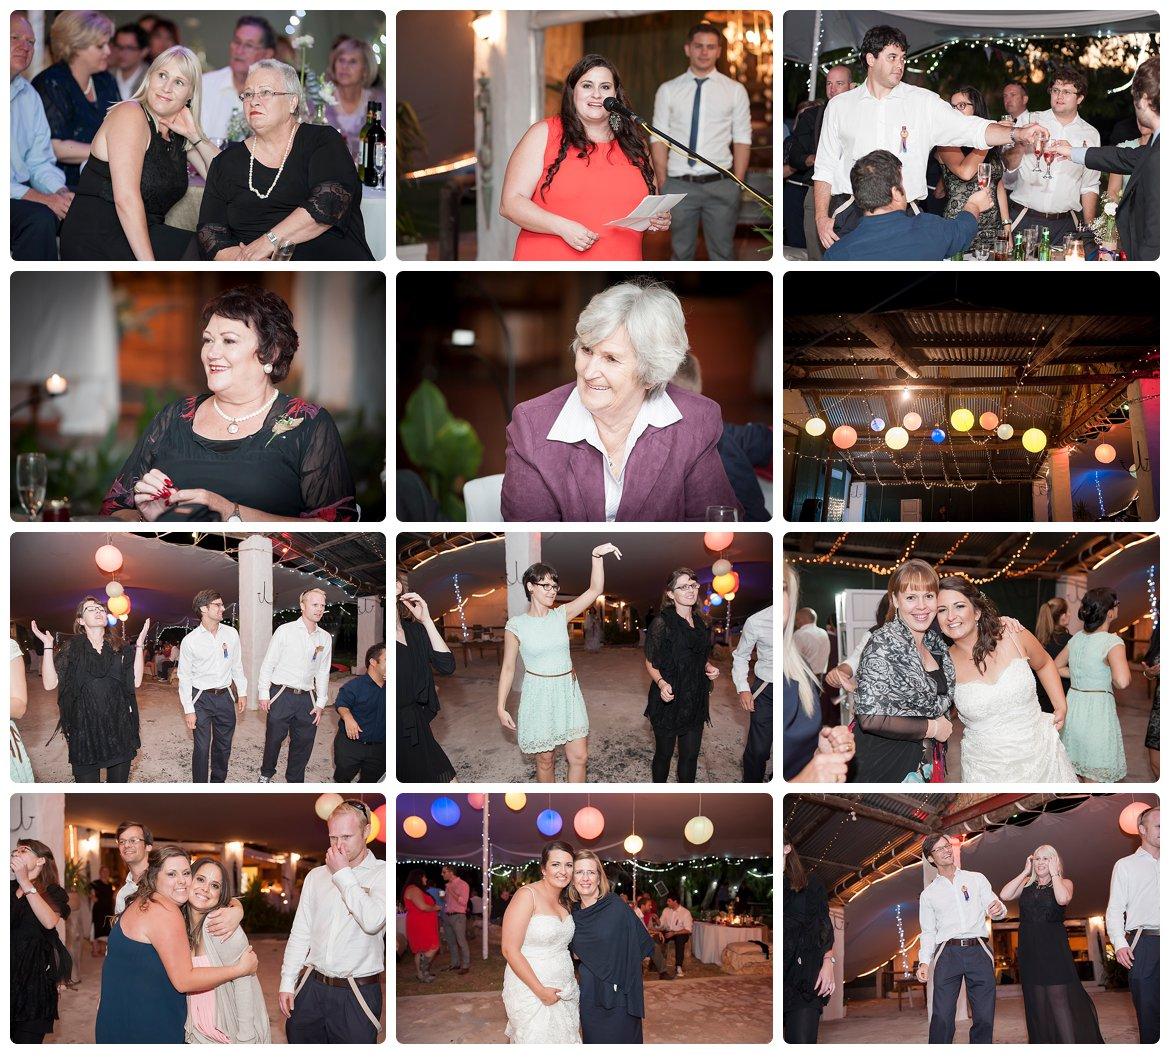 cape-town-wedding-photographer-schaftplaas-langebaan-0040